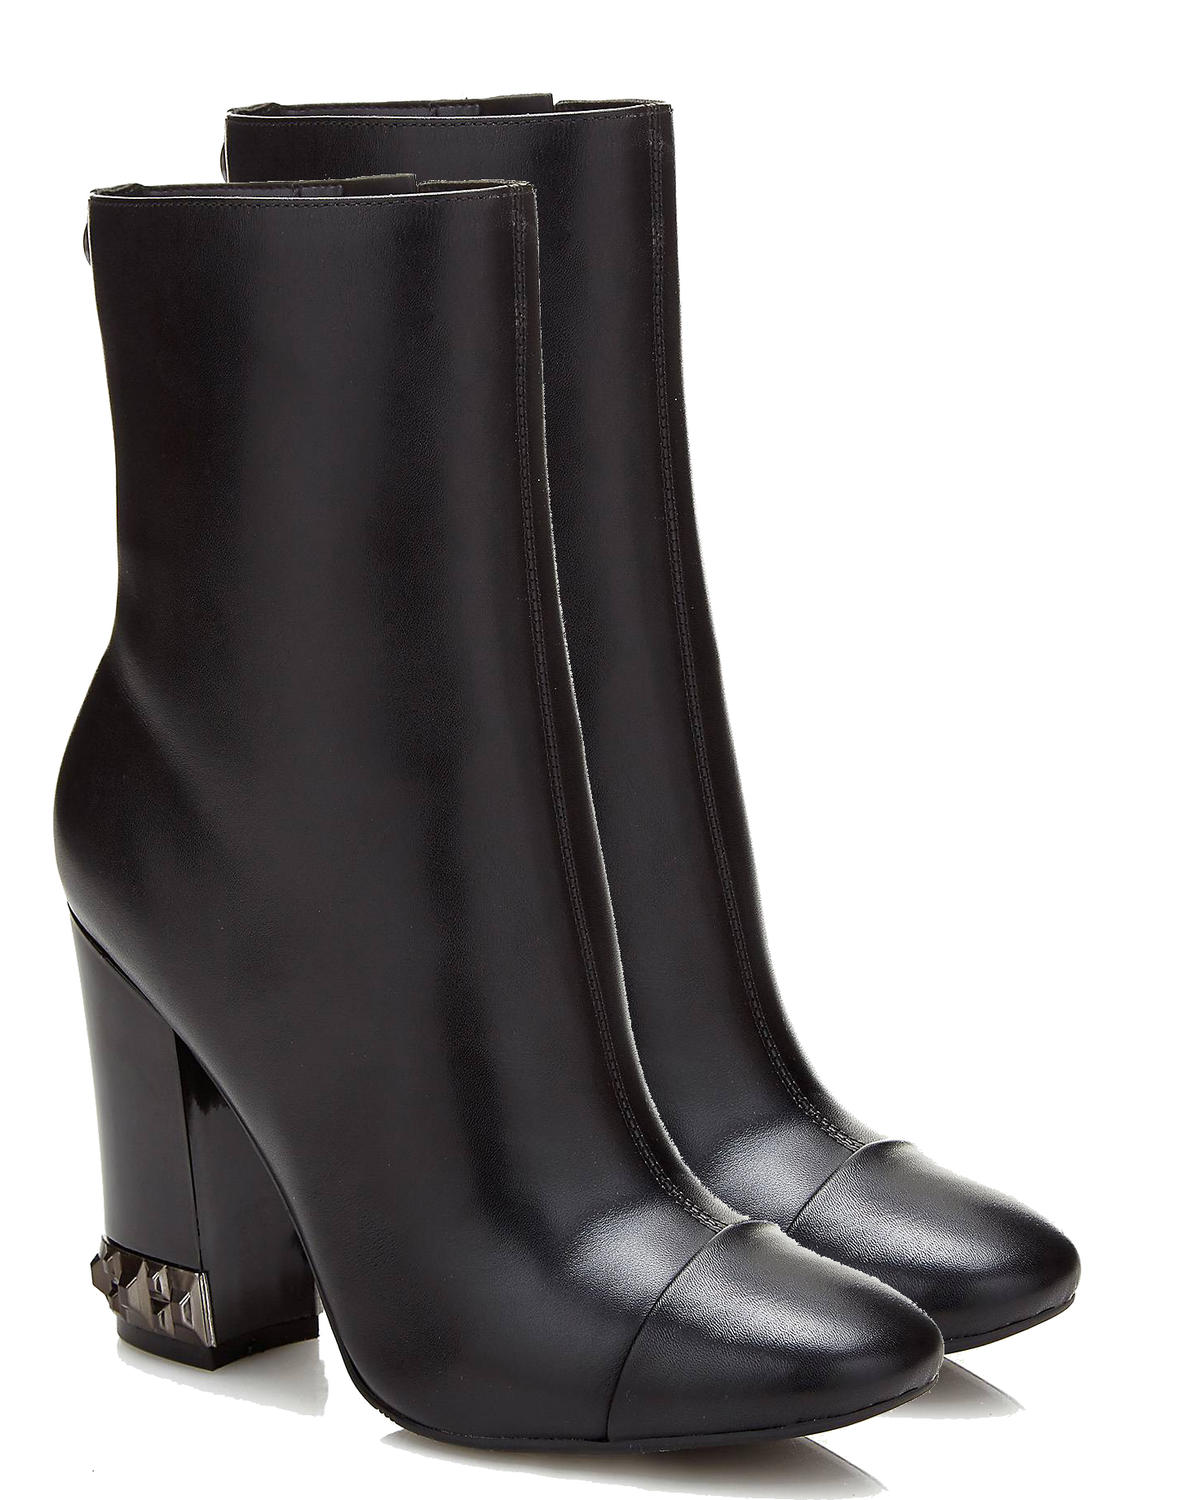 3c94edee0e Guess High Boots Ladybug, In Leather Black - Shop Online At Best Prices!